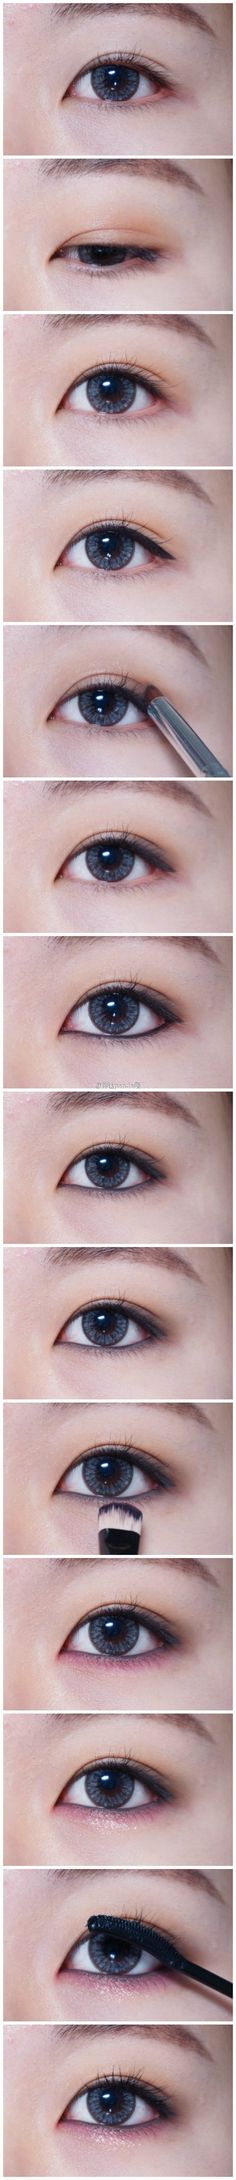 Korean make up #koreanmakeup